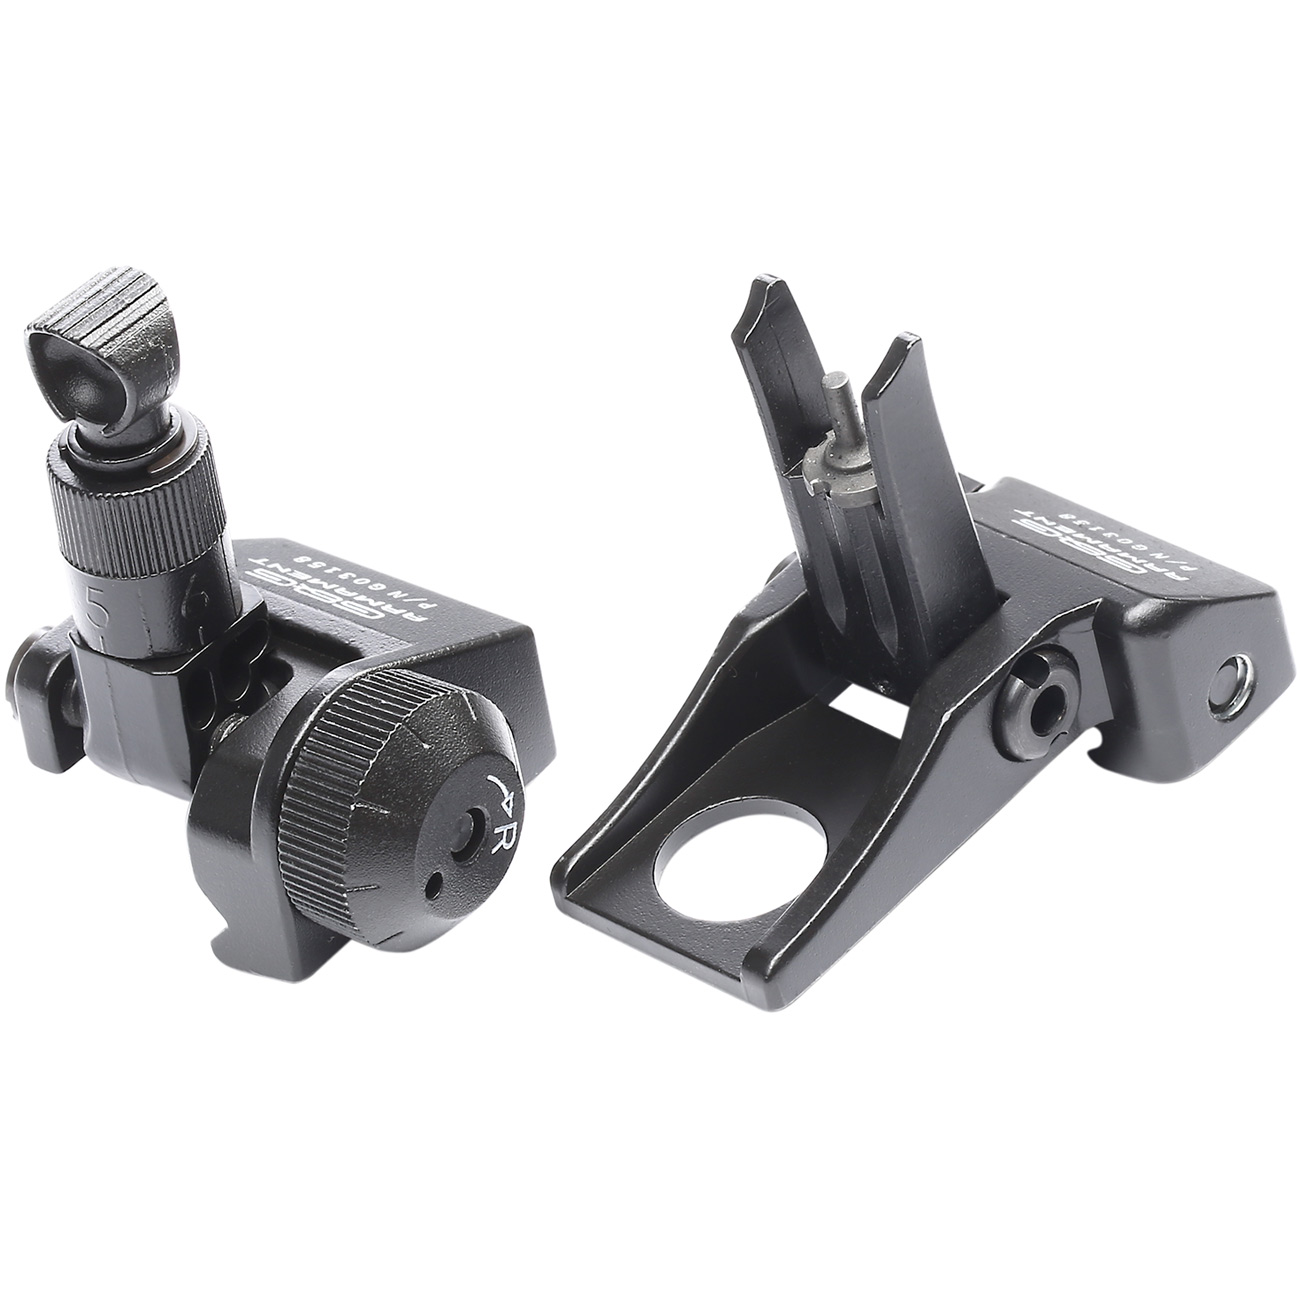 G&G Flip-Up Type-2 Sight Set Front / Rear für 21mm Schienen schwarz 1